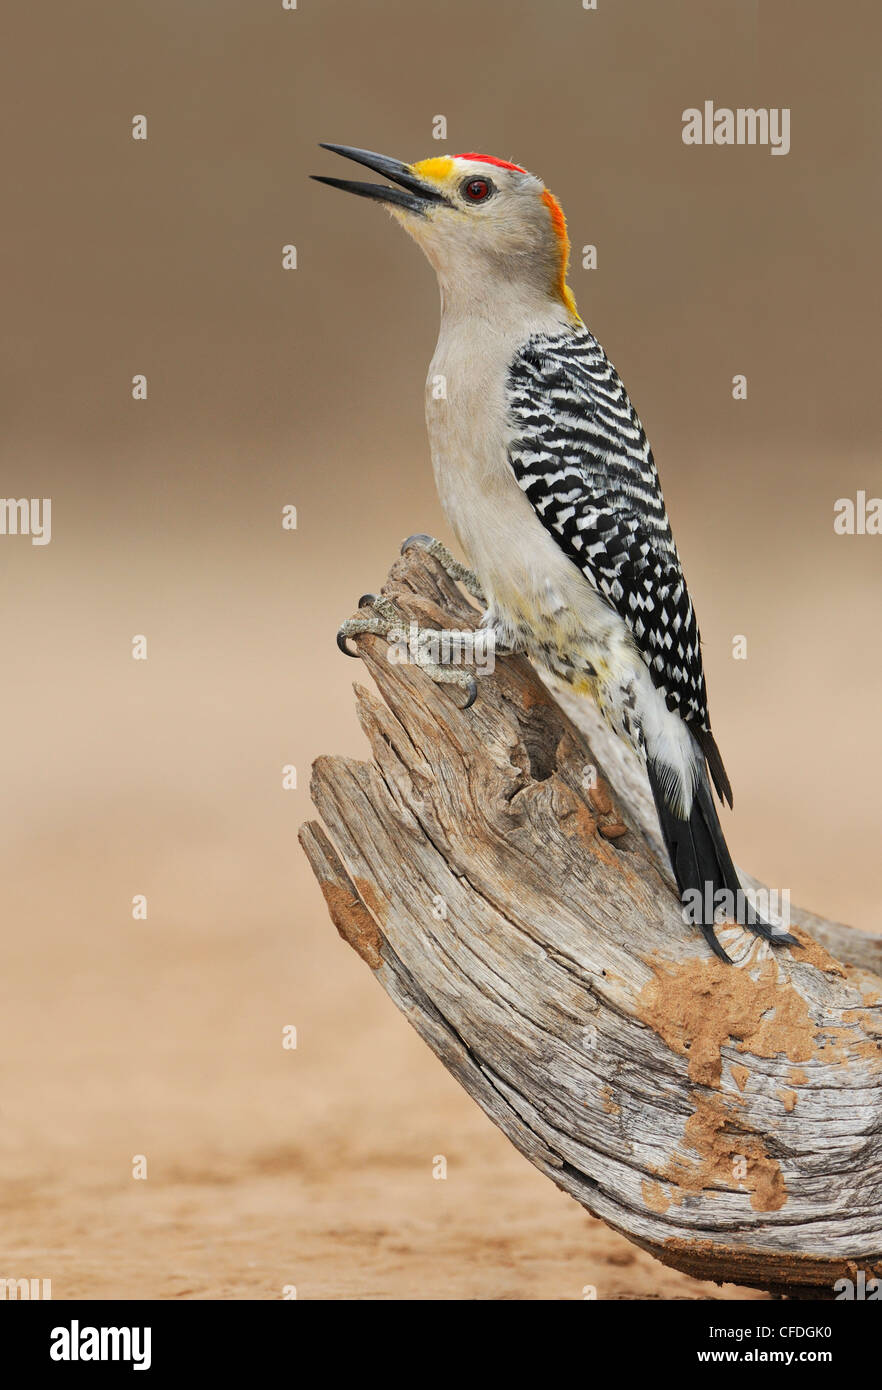 Golden-fronted Woodpecker (Melanerpes aurifrons) - Santa Clara Ranch, Texas, United States of America Stock Photo